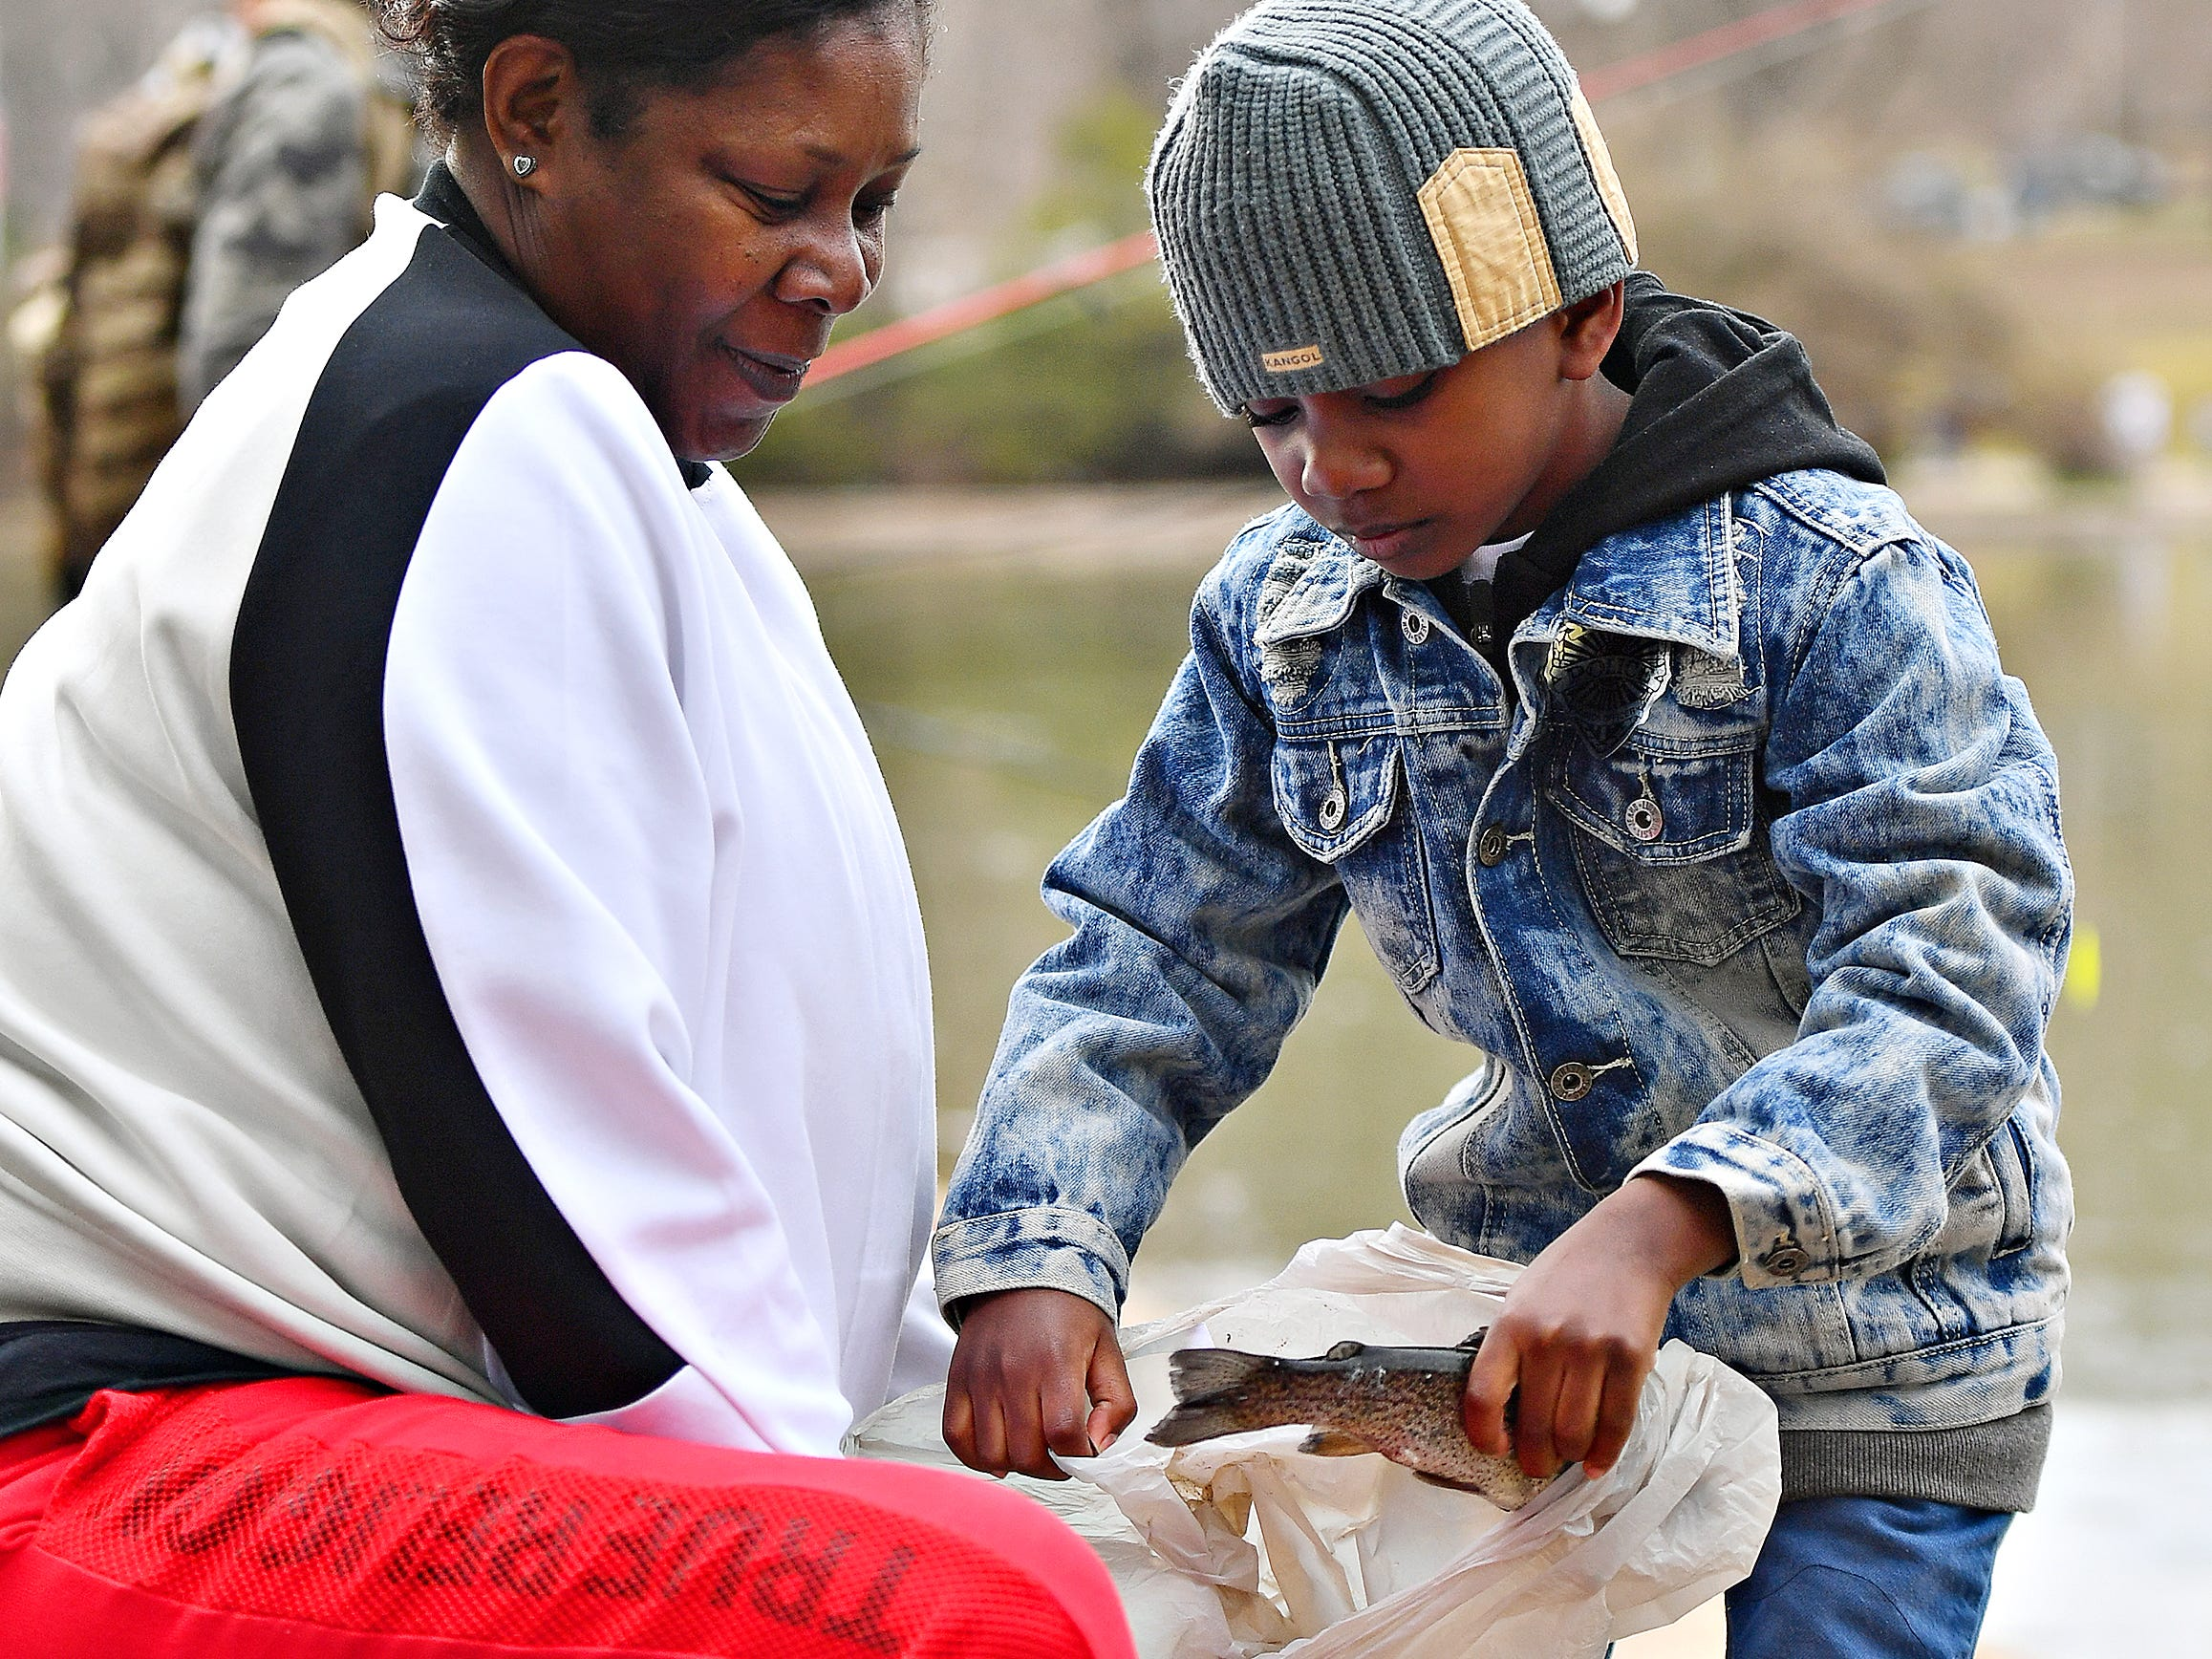 Rosa Duncan, of Mount Wolf, looks on as her grandson Ramel Duncan, 6, of Red Lion, shows the fish that he caught during the 21st Annual William Shaffer Trout Fishing Derby at Kiwanis Lake in York City, Saturday, March 30, 2019. Dawn J. Sagert photo